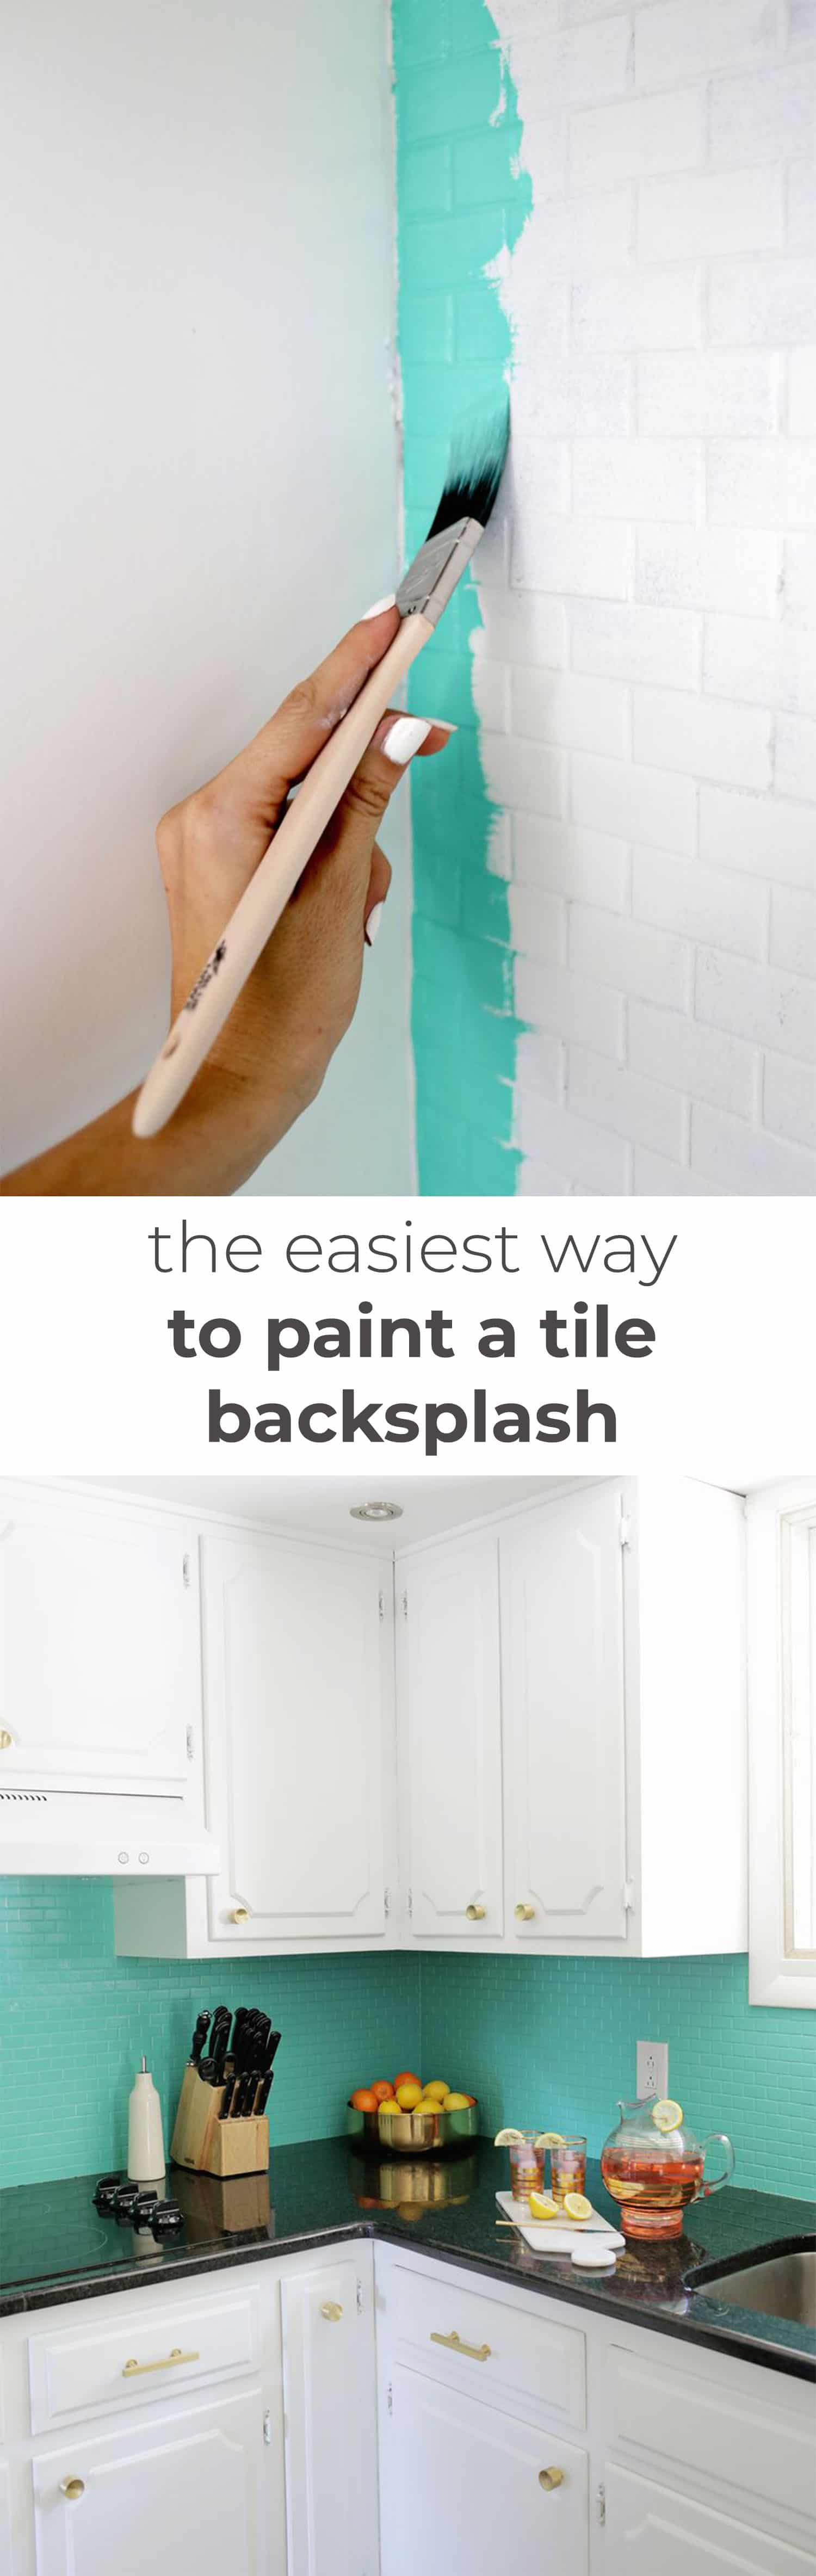 Saved By Painting Instead Of Replacing It Now I Have More Funds To Put Towards All The Other Things On My Renovation List